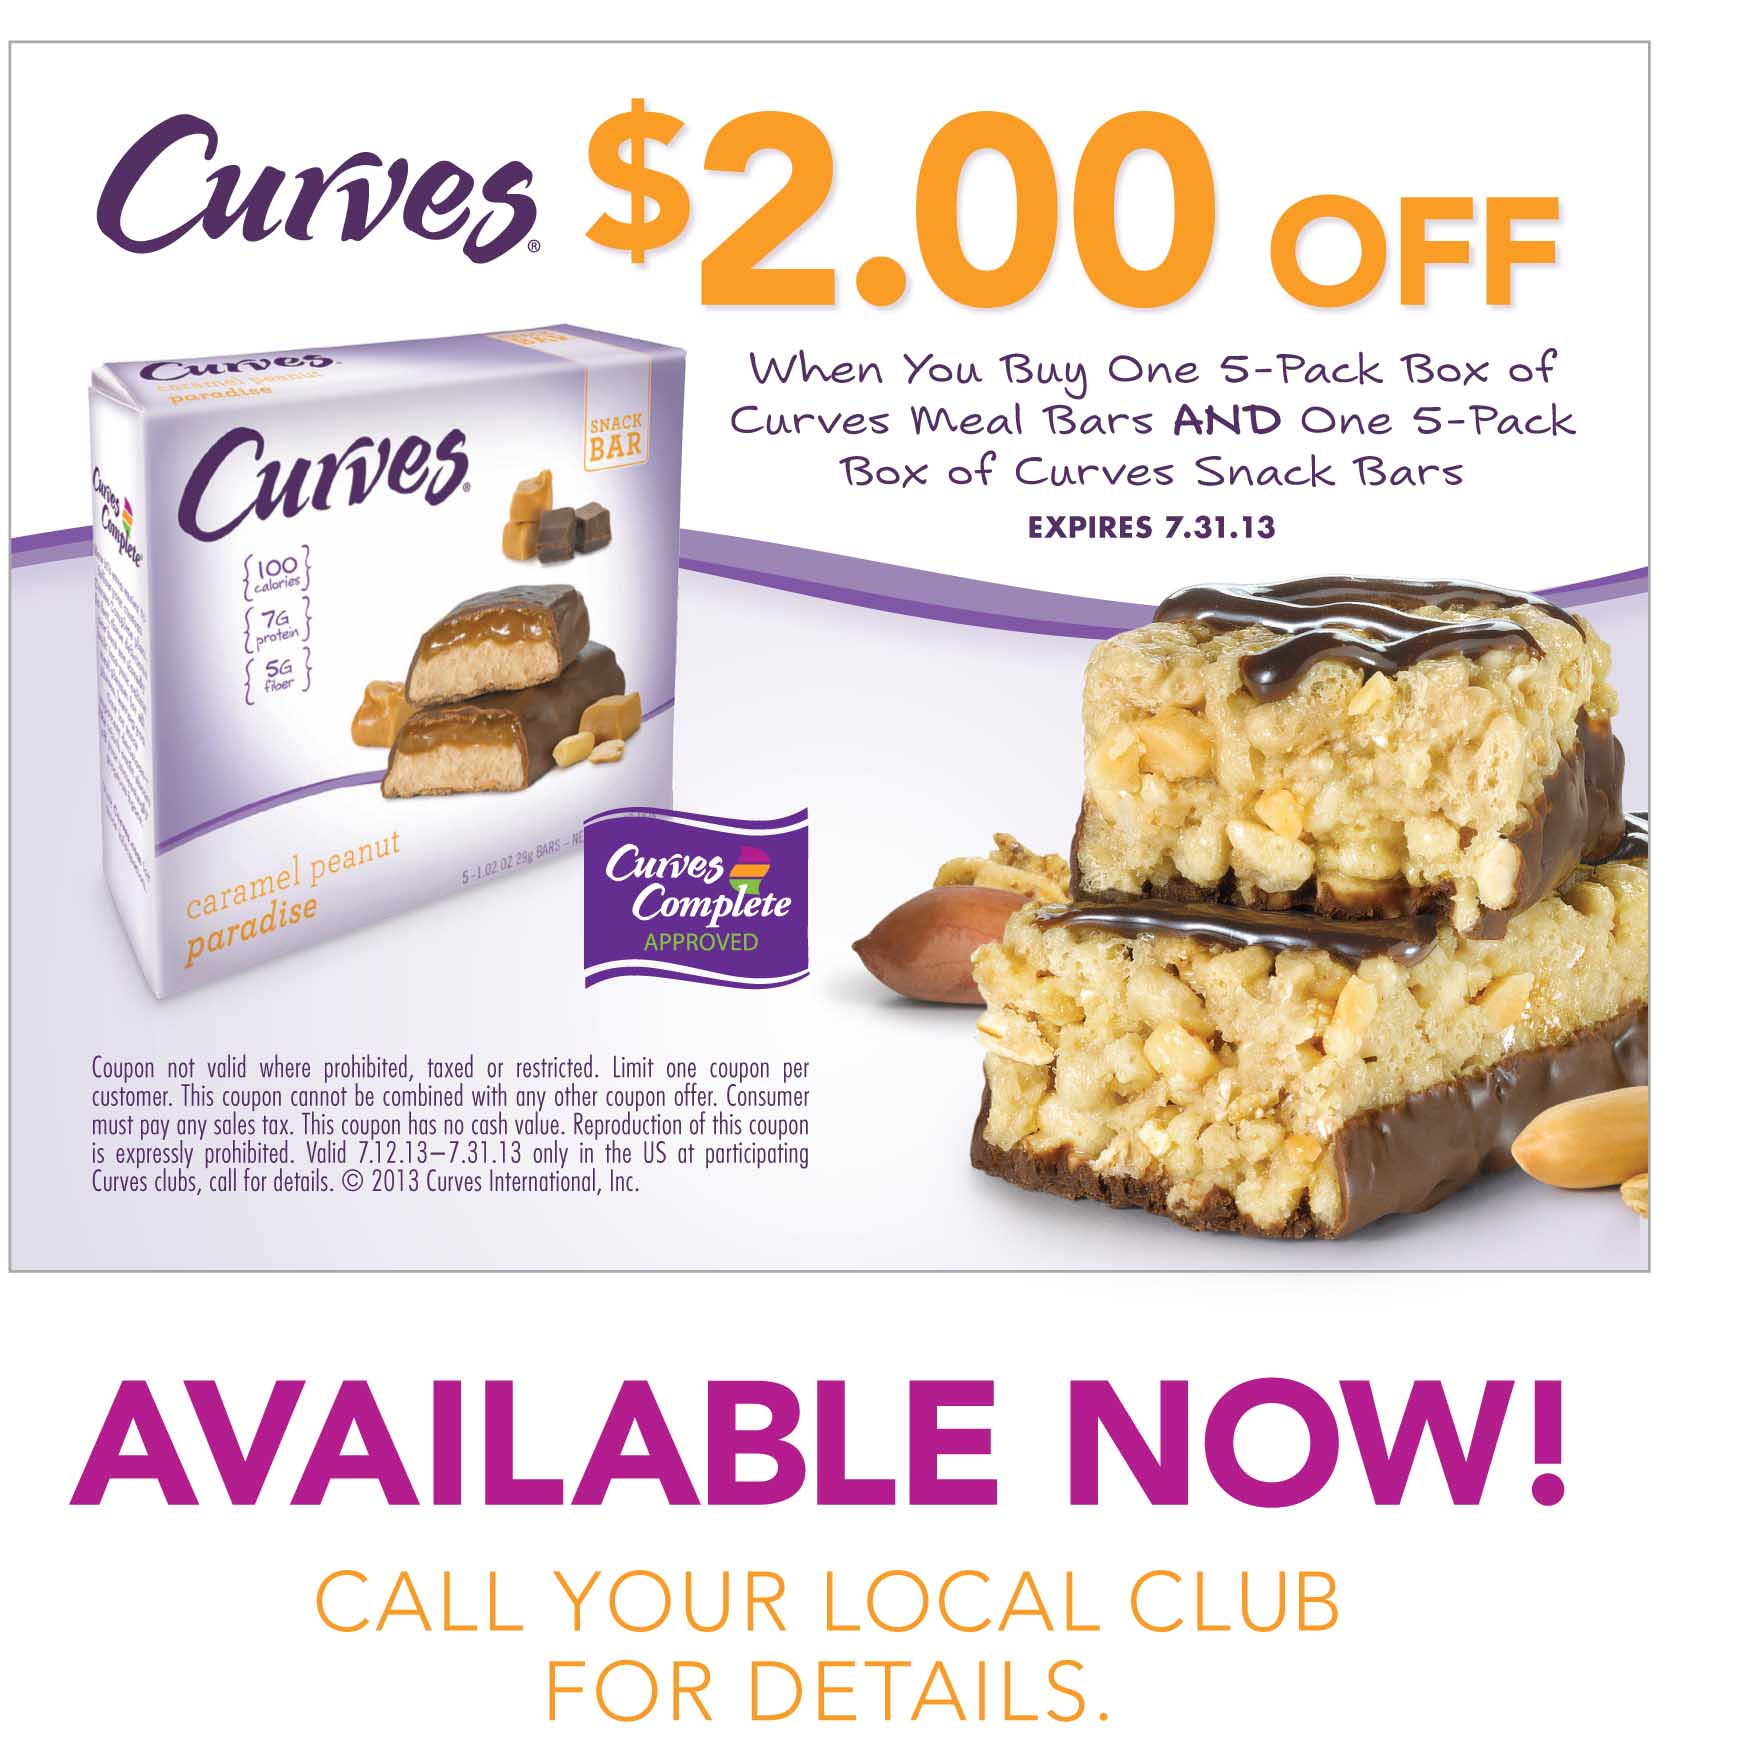 Hips and curves coupons 2018